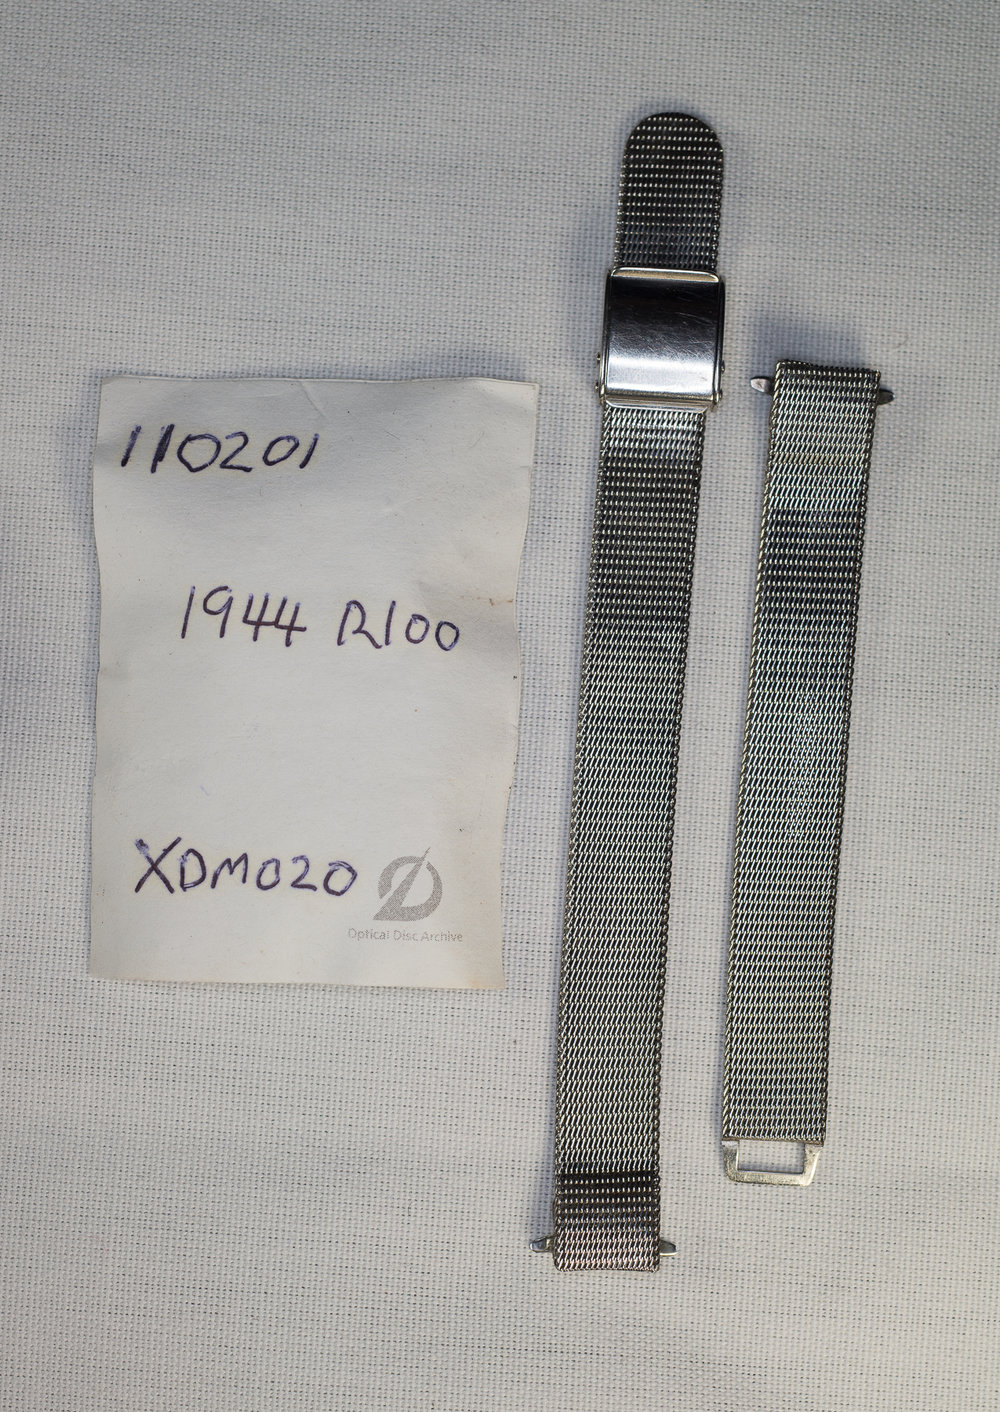 XDM020 for 1944-0012